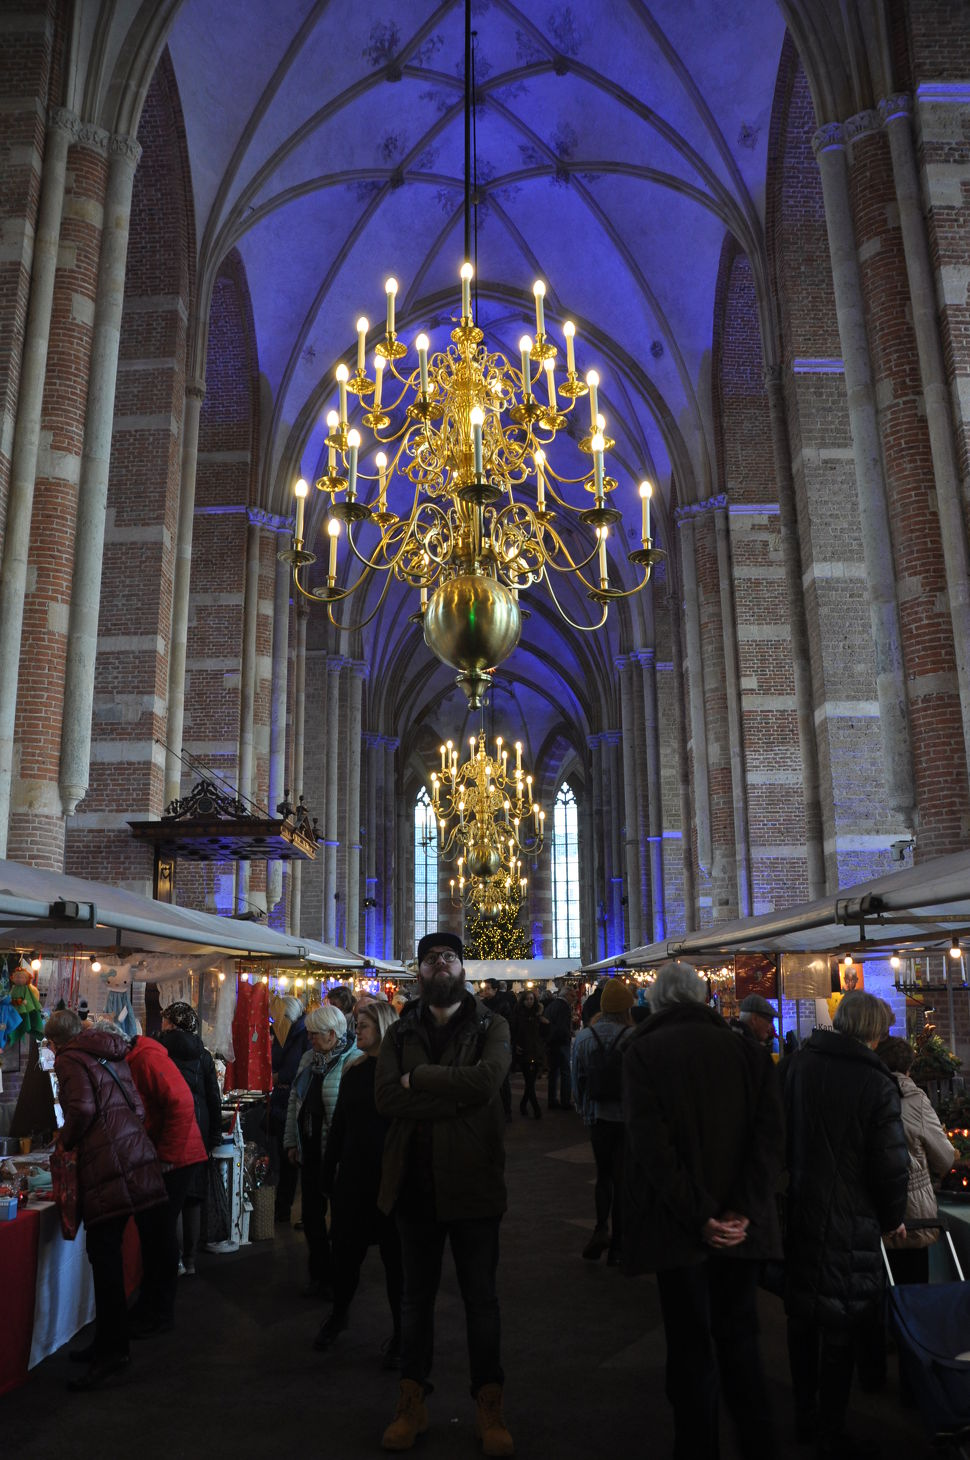 Lebuinus Kerstmarkt in Deventer